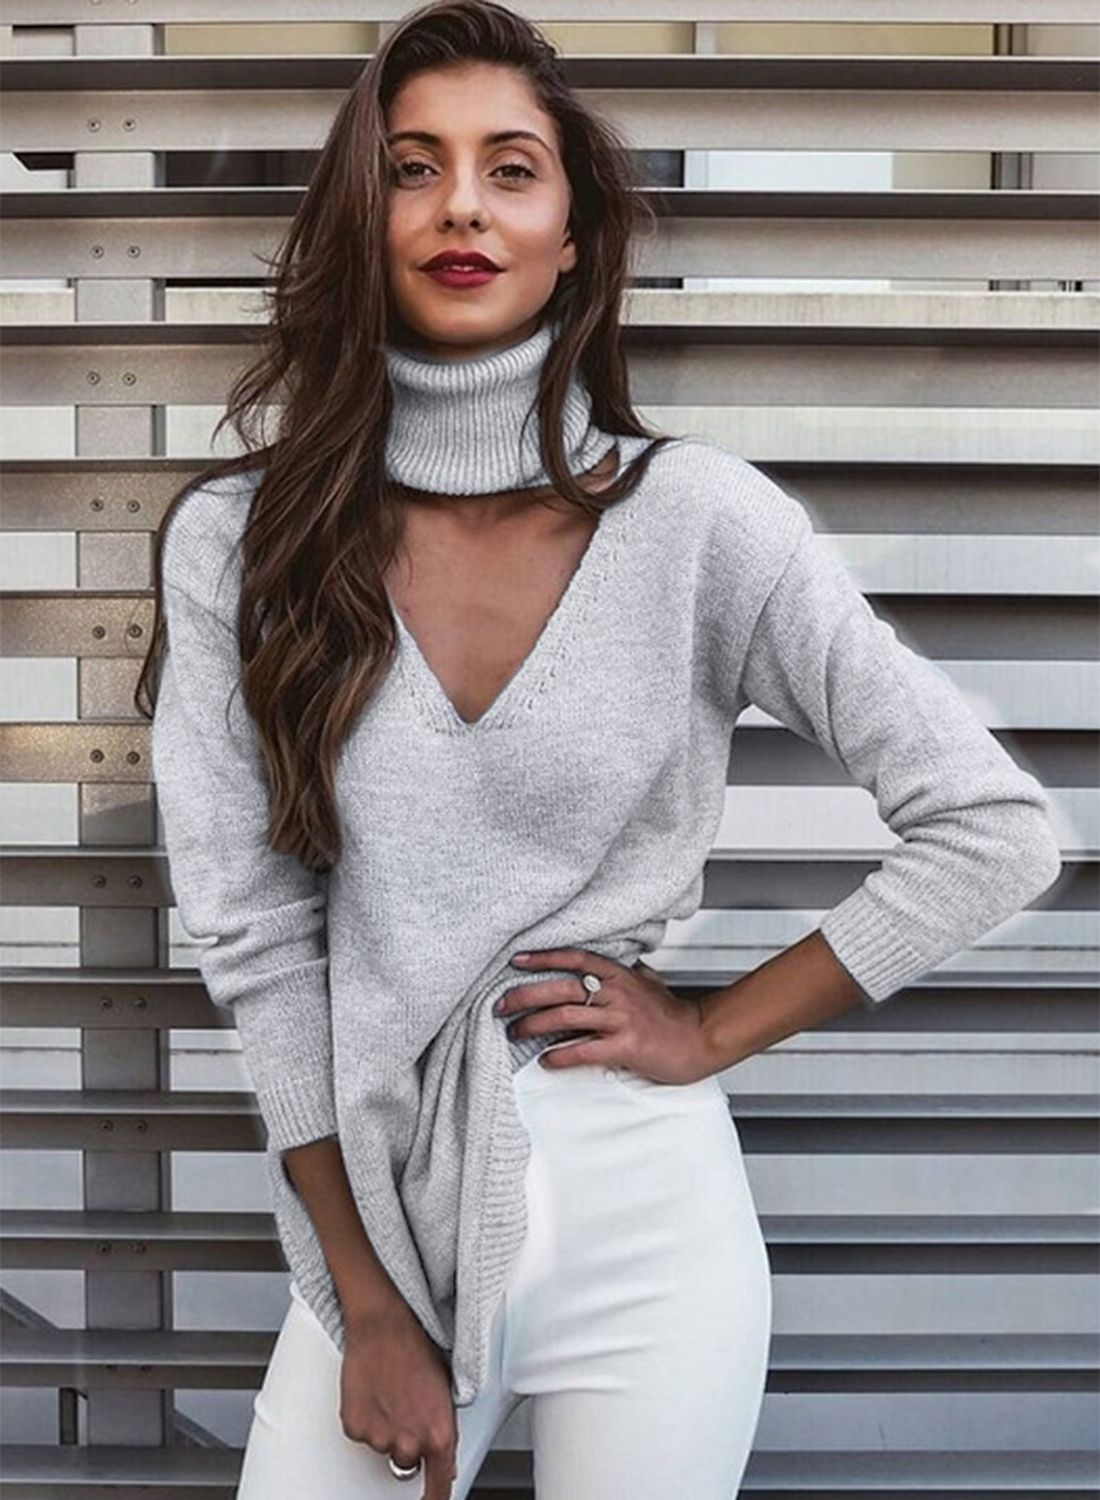 V Neck Halter Turtleneck Knit Pullover Sweater Dress | Pullover ...